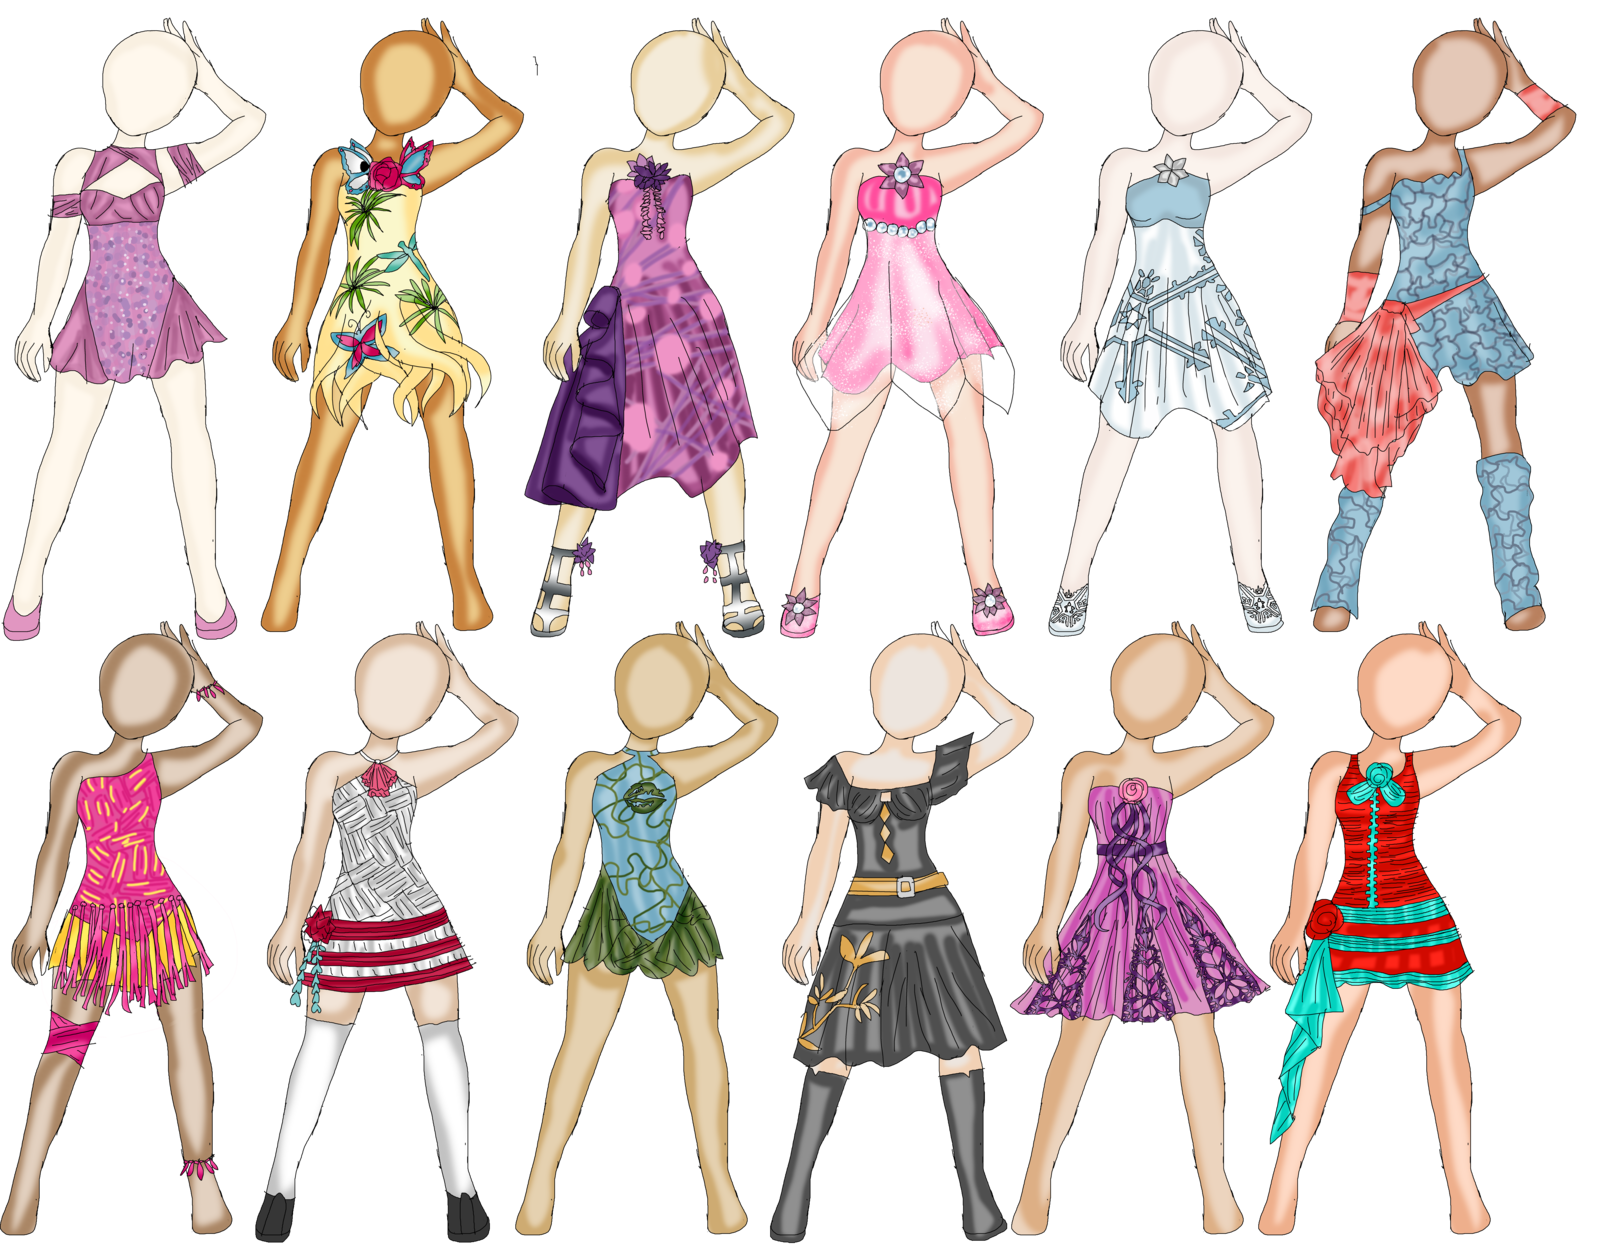 Outfits drawing spring. Heavily influenced outfit designs